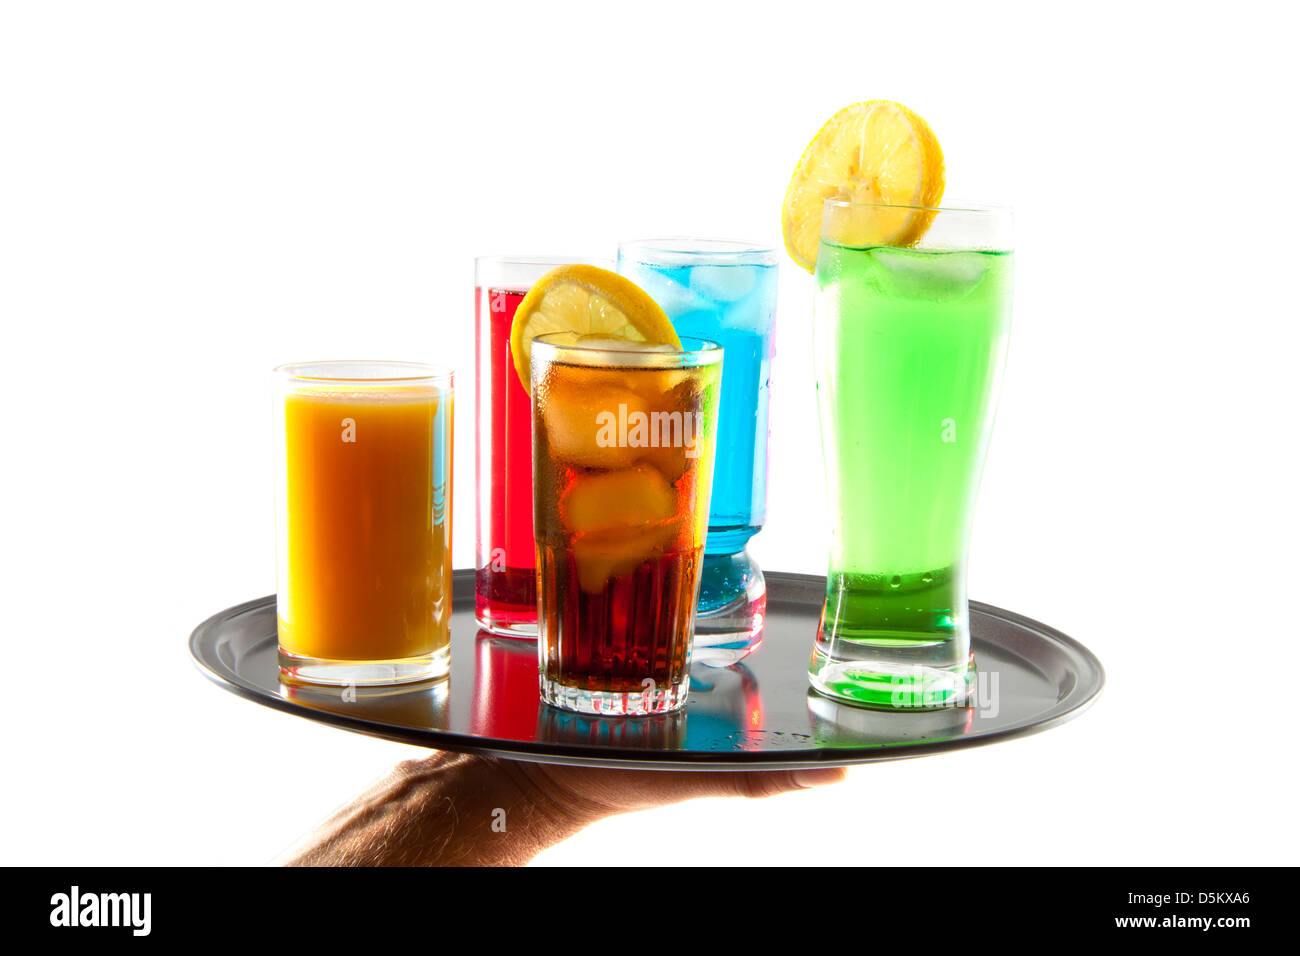 Different kind of drinks on a black tray over white - Stock Image